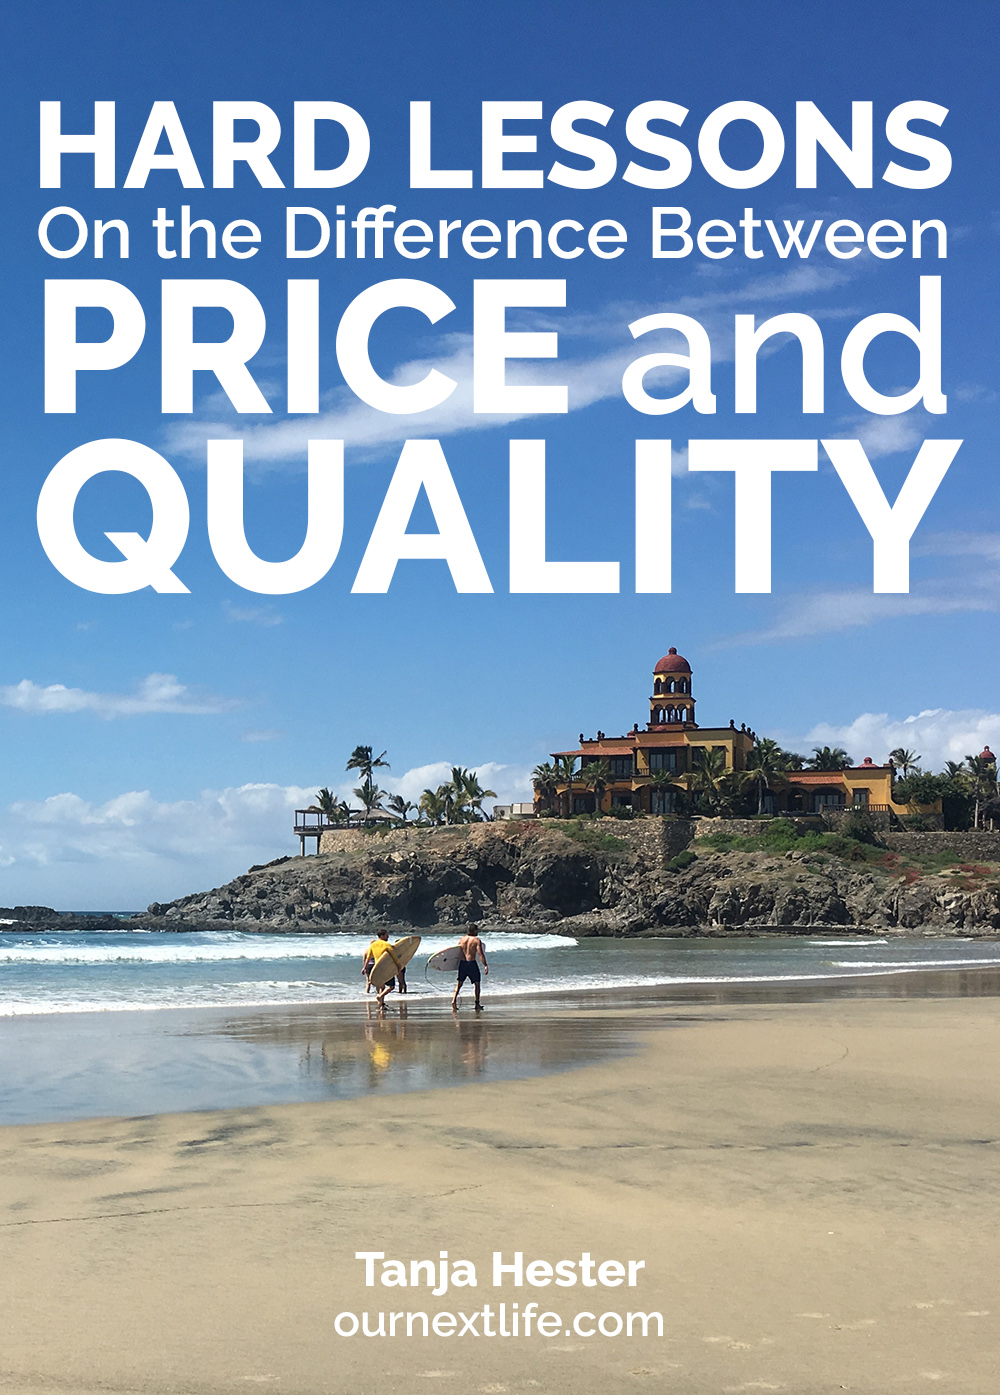 Hard Lessons On the Difference Between Price and Quality // Our Next Life // Tanja Hester, author of Work Optional: Retire Early the Non-Penny-Pinching Way // early retirement, financial independence, adventure, happiness